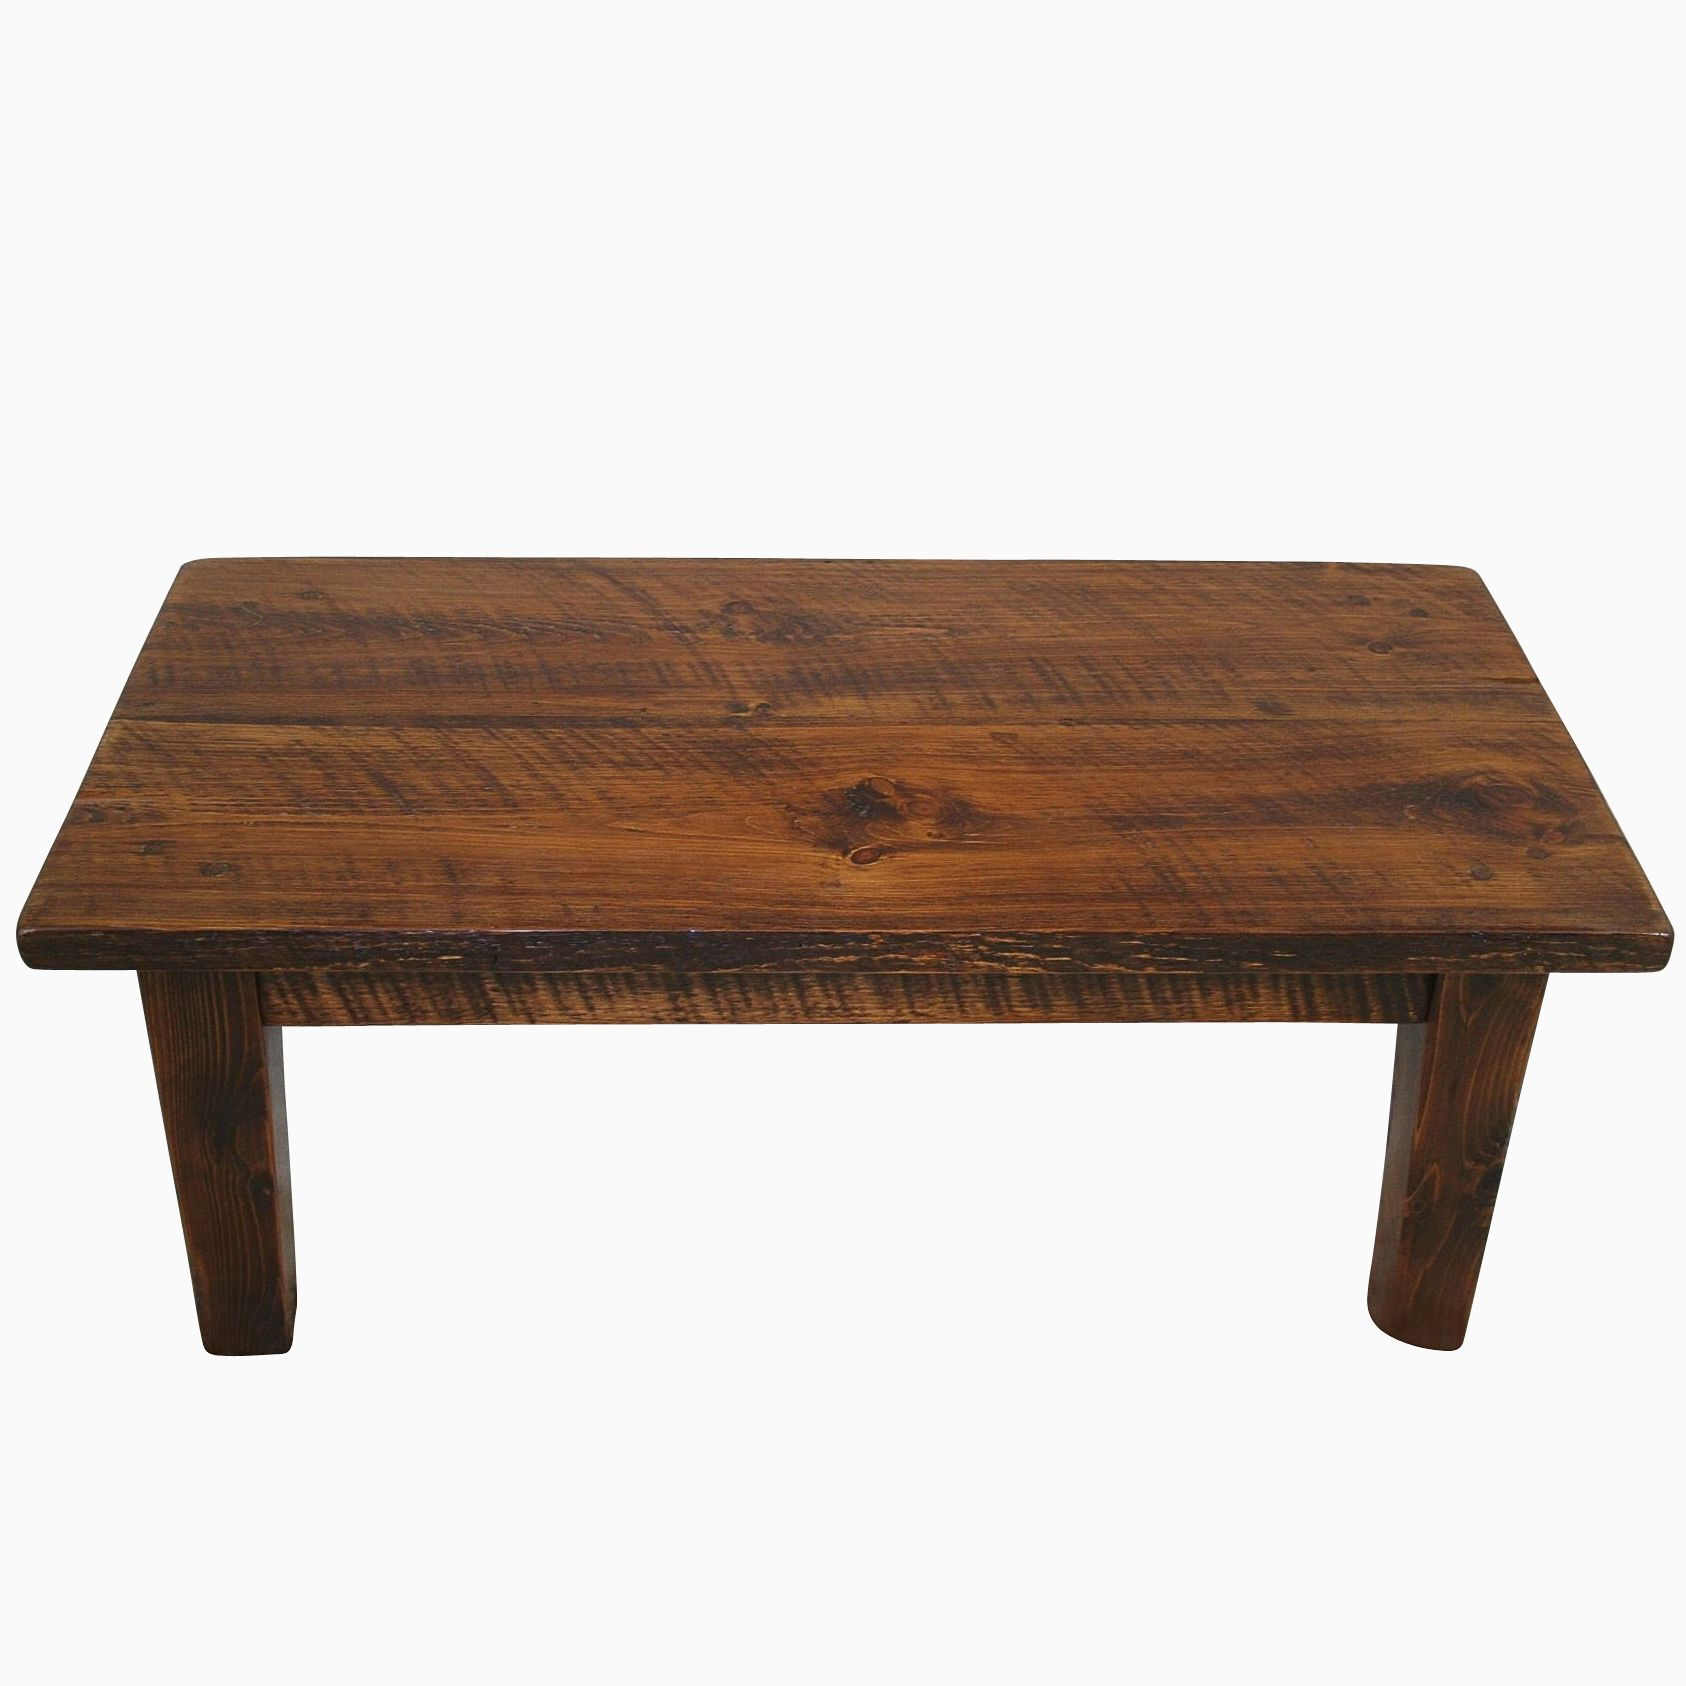 Buy a custom rough sawn pine rustic style coffee table made to order from sophisticated country Coffee tables rustic